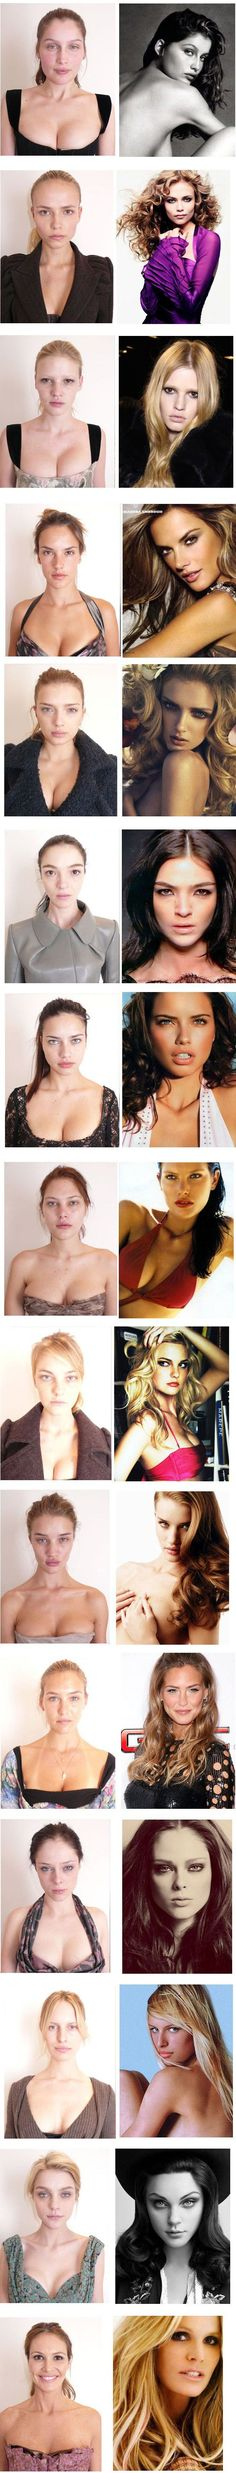 Models before & after makeup and hair (and photoshop) . all girls need to see this.